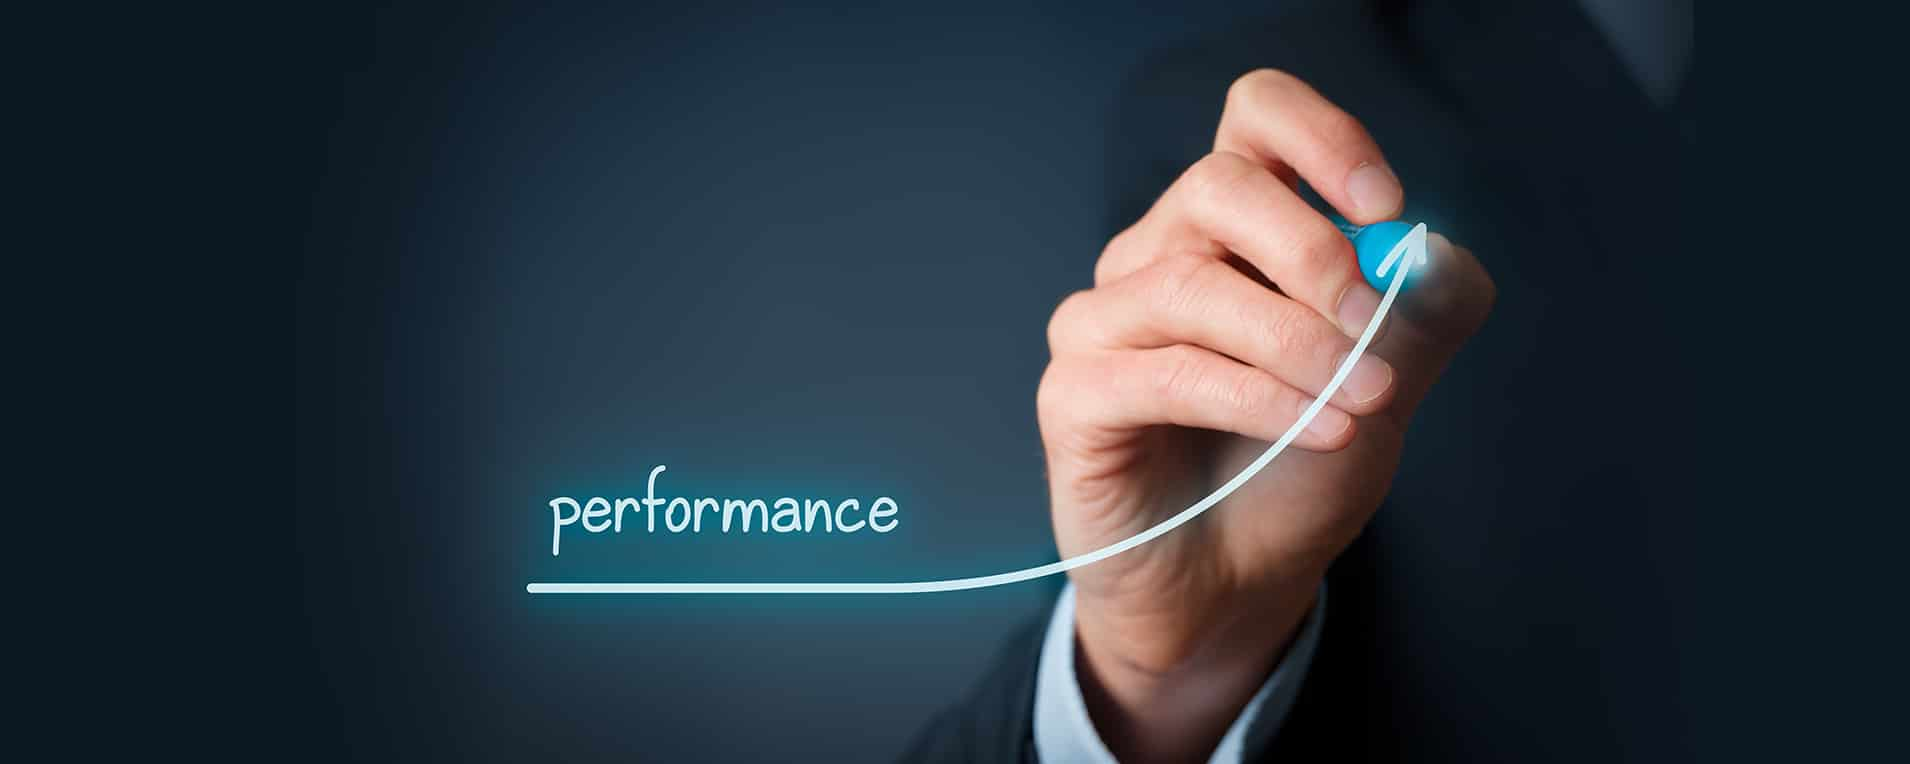 Overcoming Performance Bugs: How to Test AEM-DAM With Apache JMeter